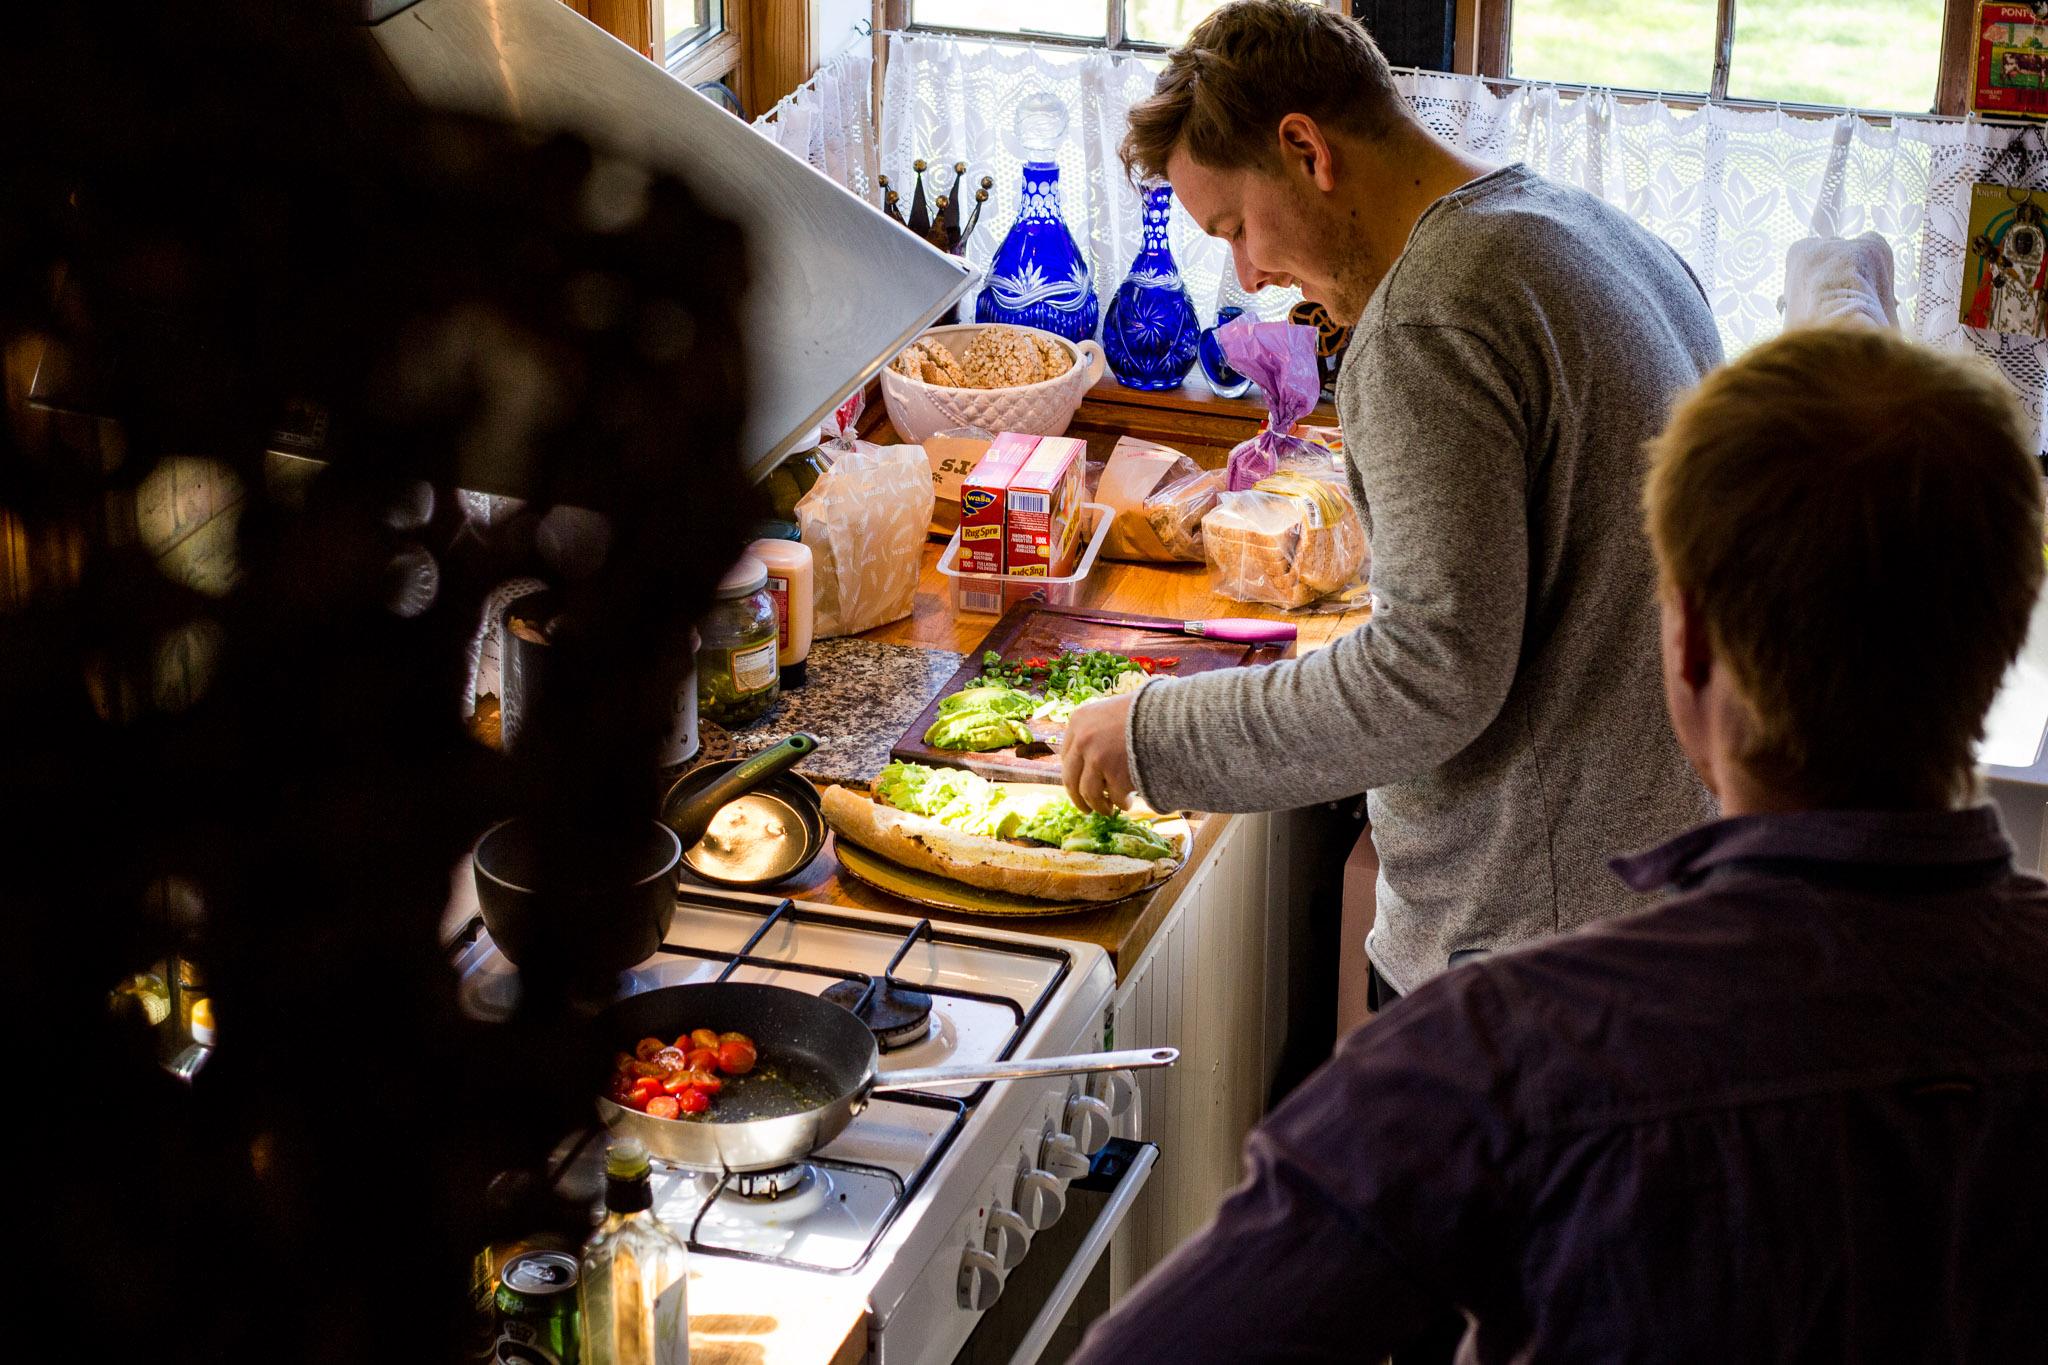 cooking lessons is one of the experience gifts for men that can be done